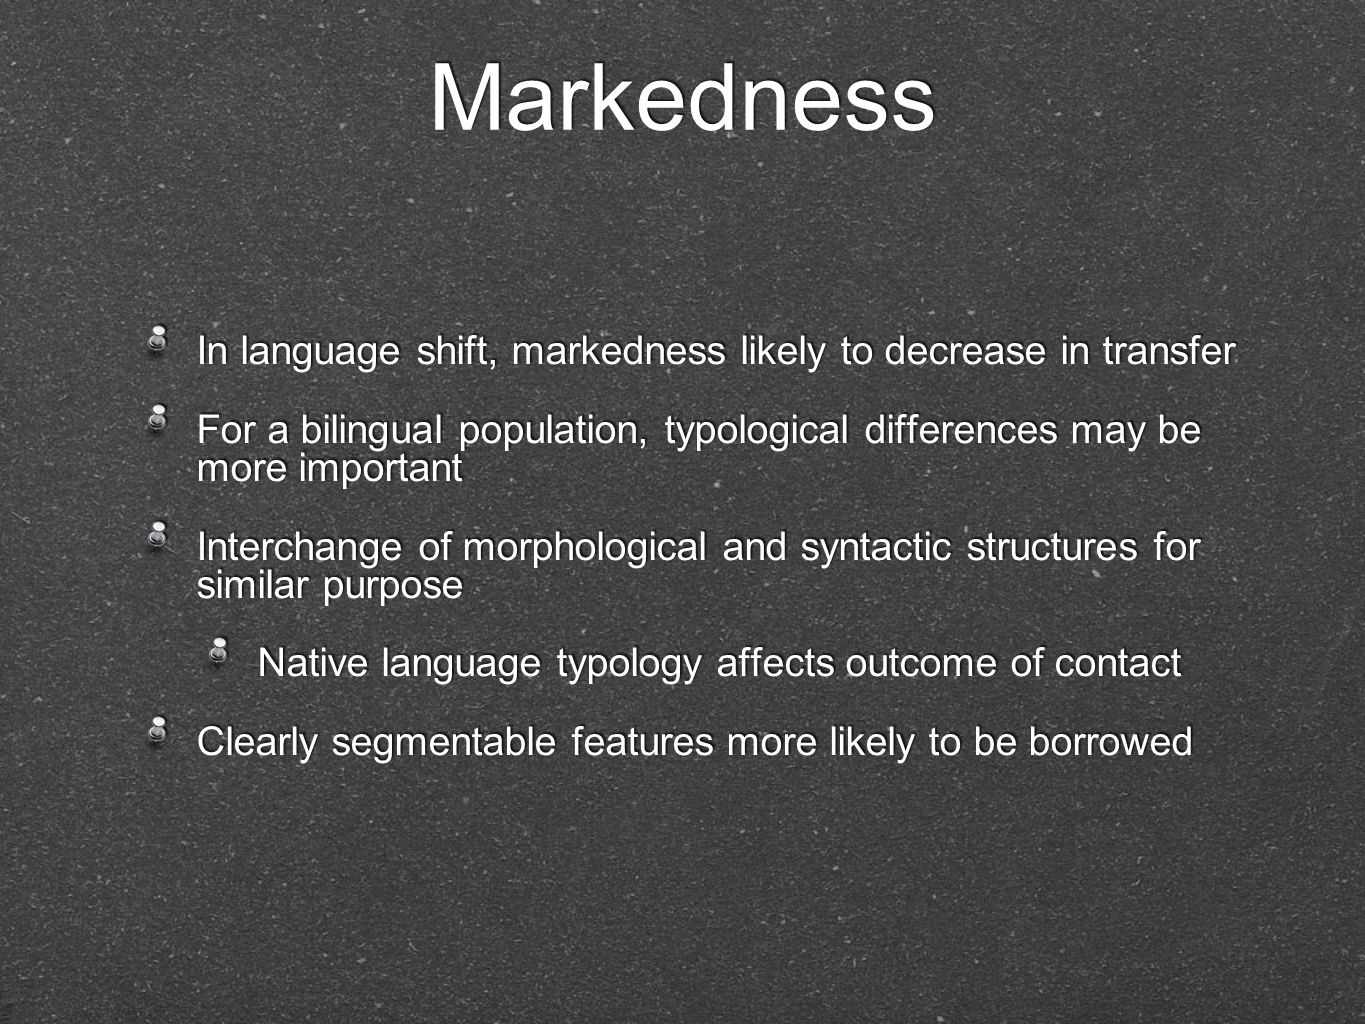 Markedness In language shift, markedness likely to decrease in transfer For a bilingual population, typological differences may be more important Interchange of morphological and syntactic structures for similar purpose Native language typology affects outcome of contact Clearly segmentable features more likely to be borrowed In language shift, markedness likely to decrease in transfer For a bilingual population, typological differences may be more important Interchange of morphological and syntactic structures for similar purpose Native language typology affects outcome of contact Clearly segmentable features more likely to be borrowed